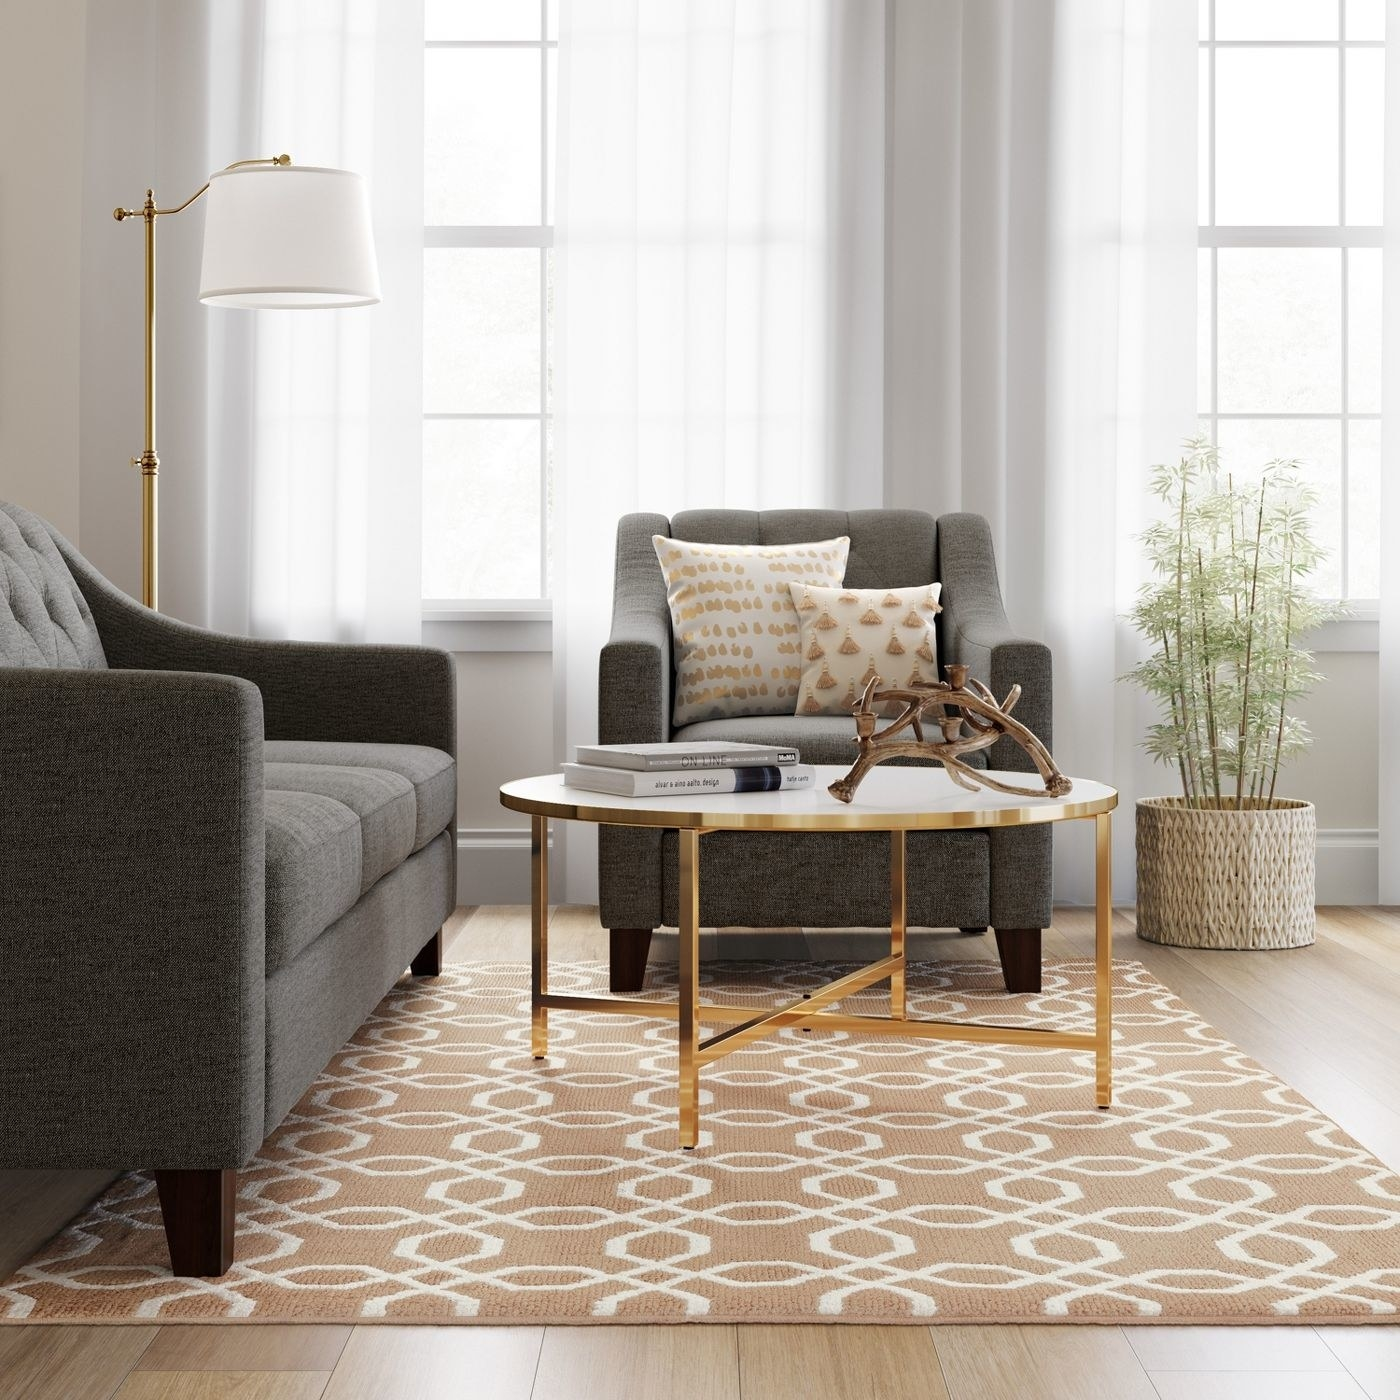 tan and white patterned rug